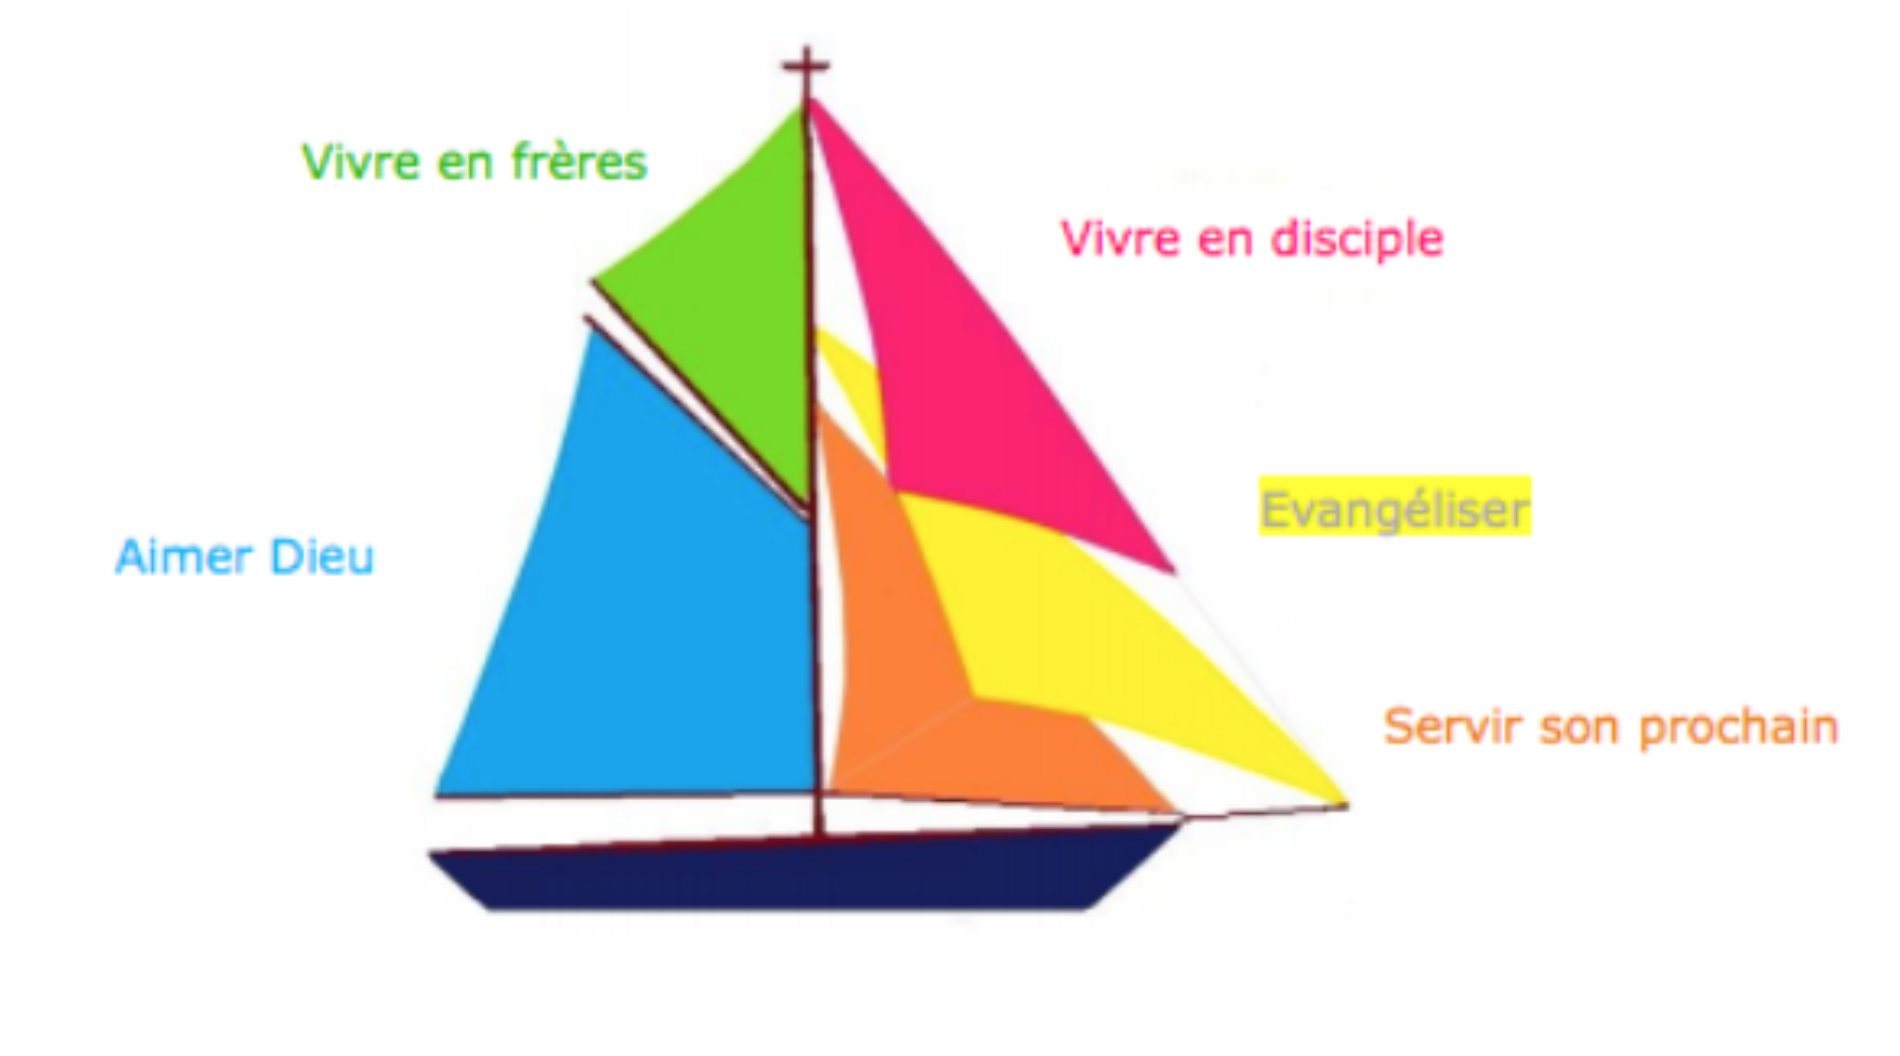 Permalink to: Notre mission